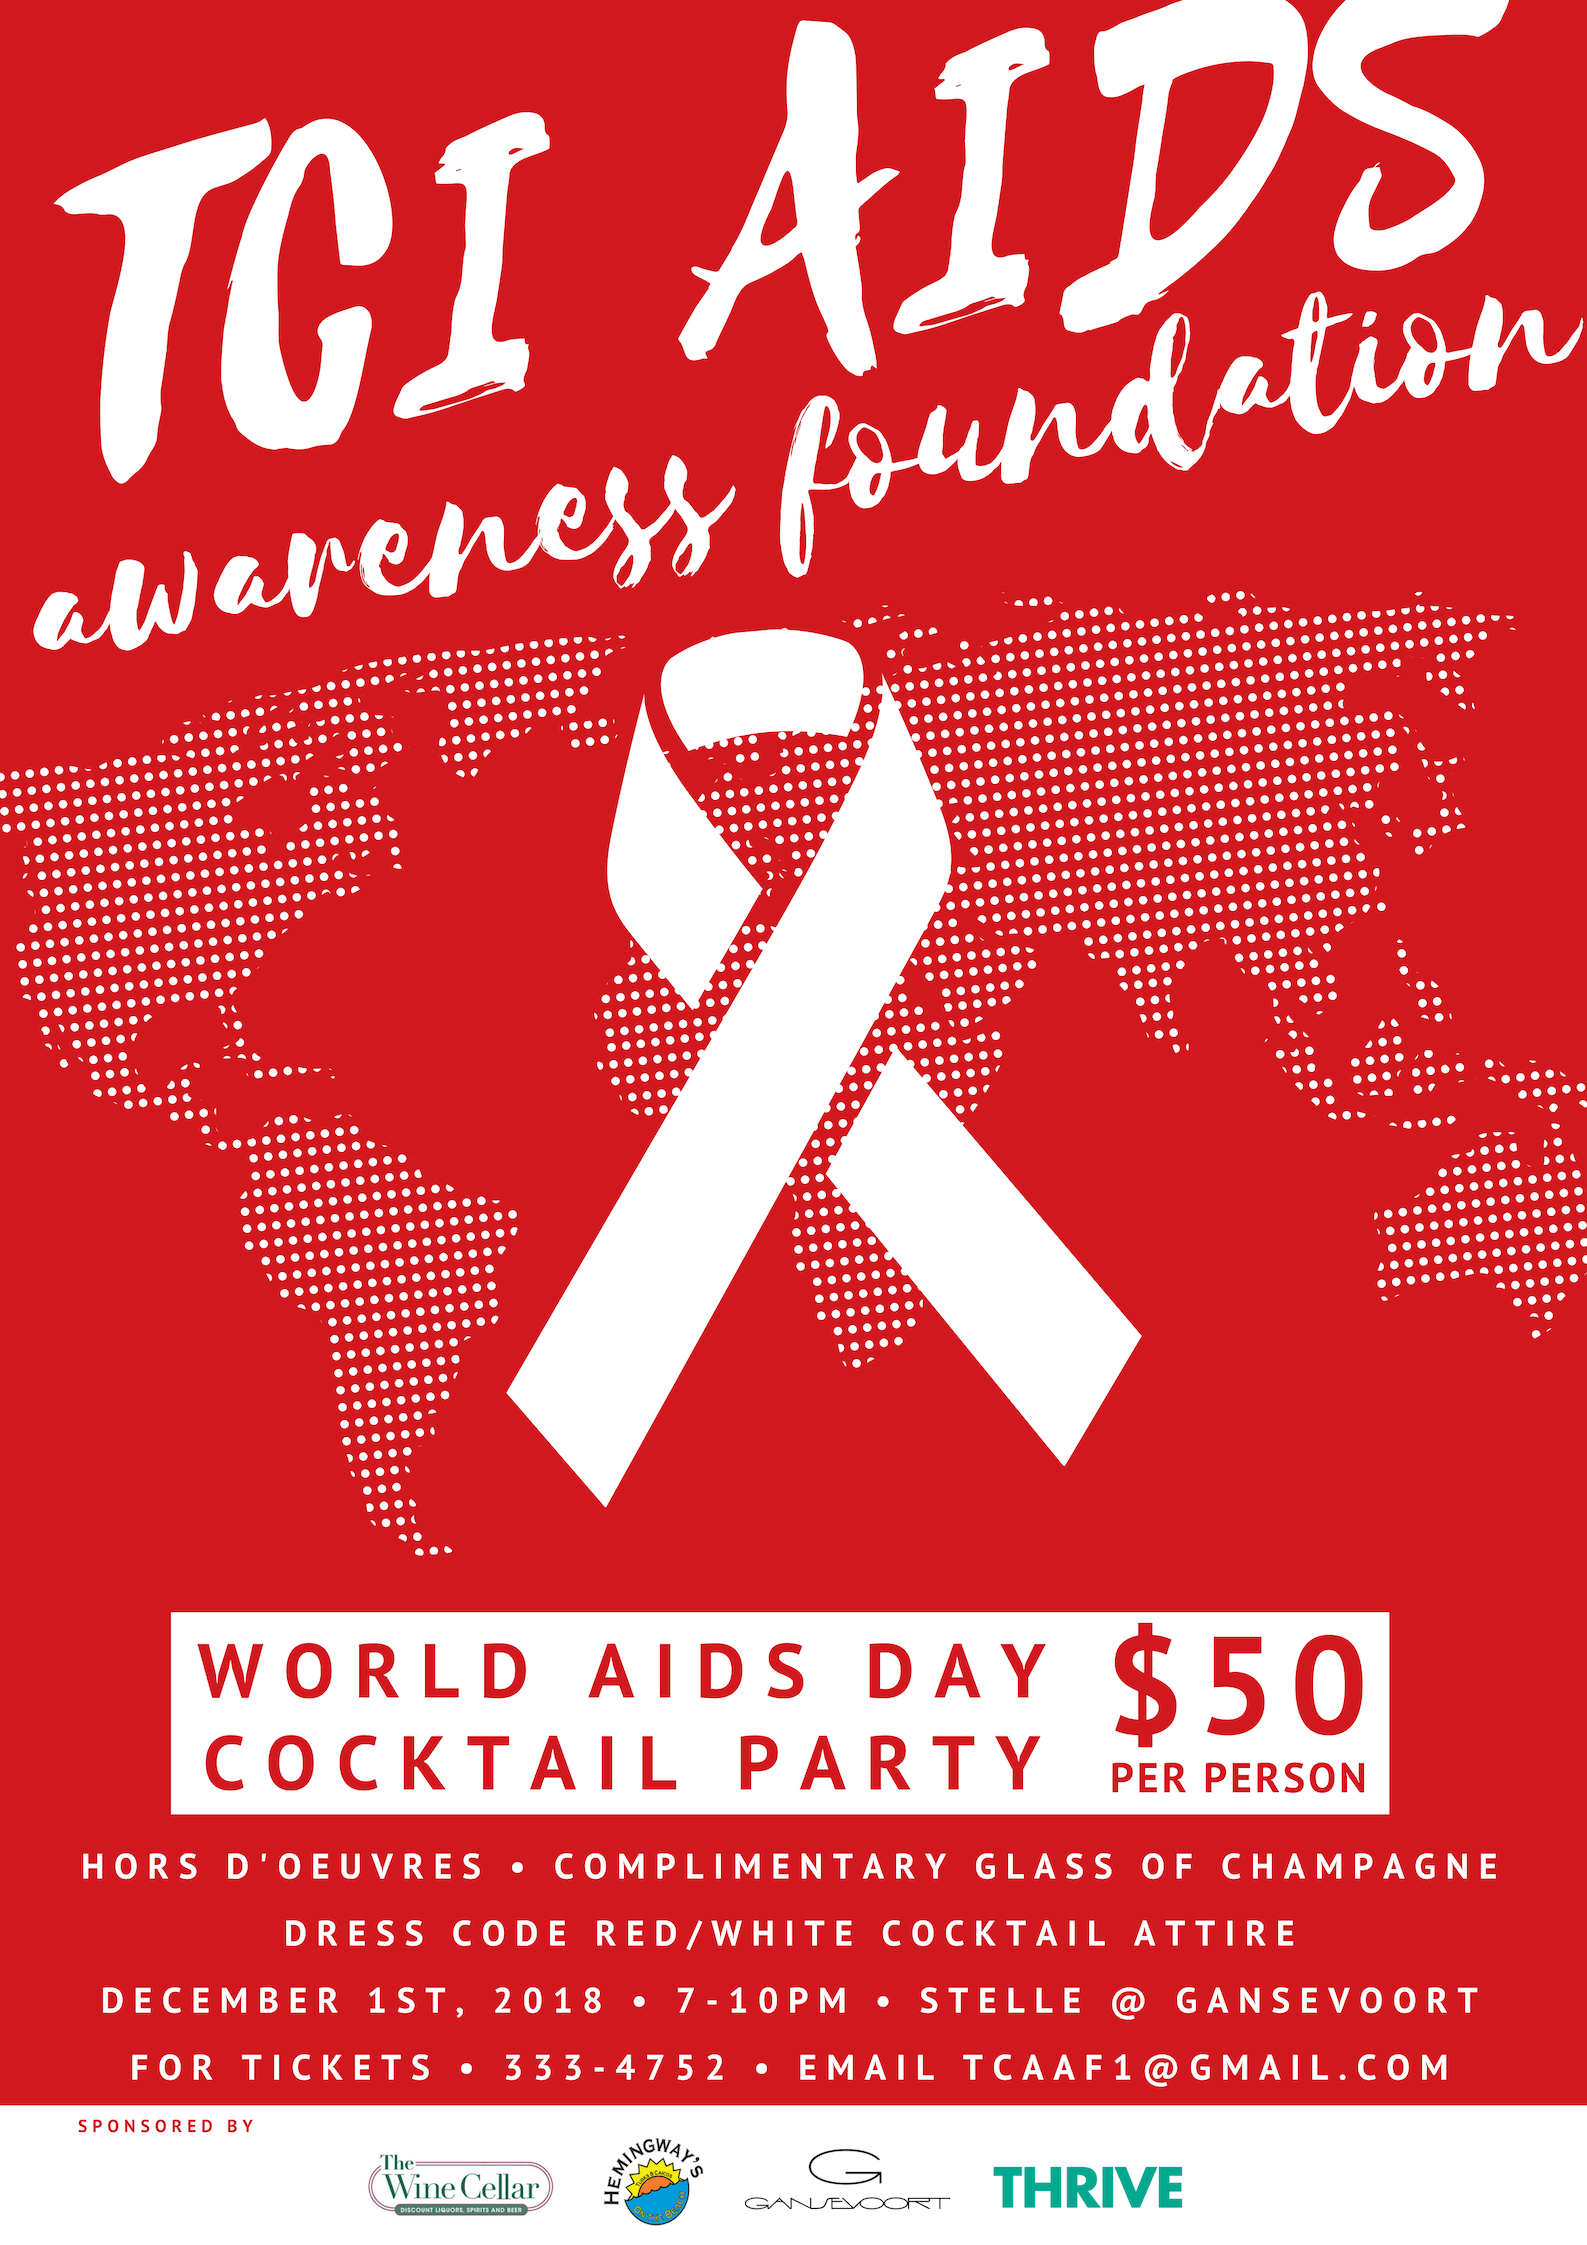 World Aids Day cocktail party.png